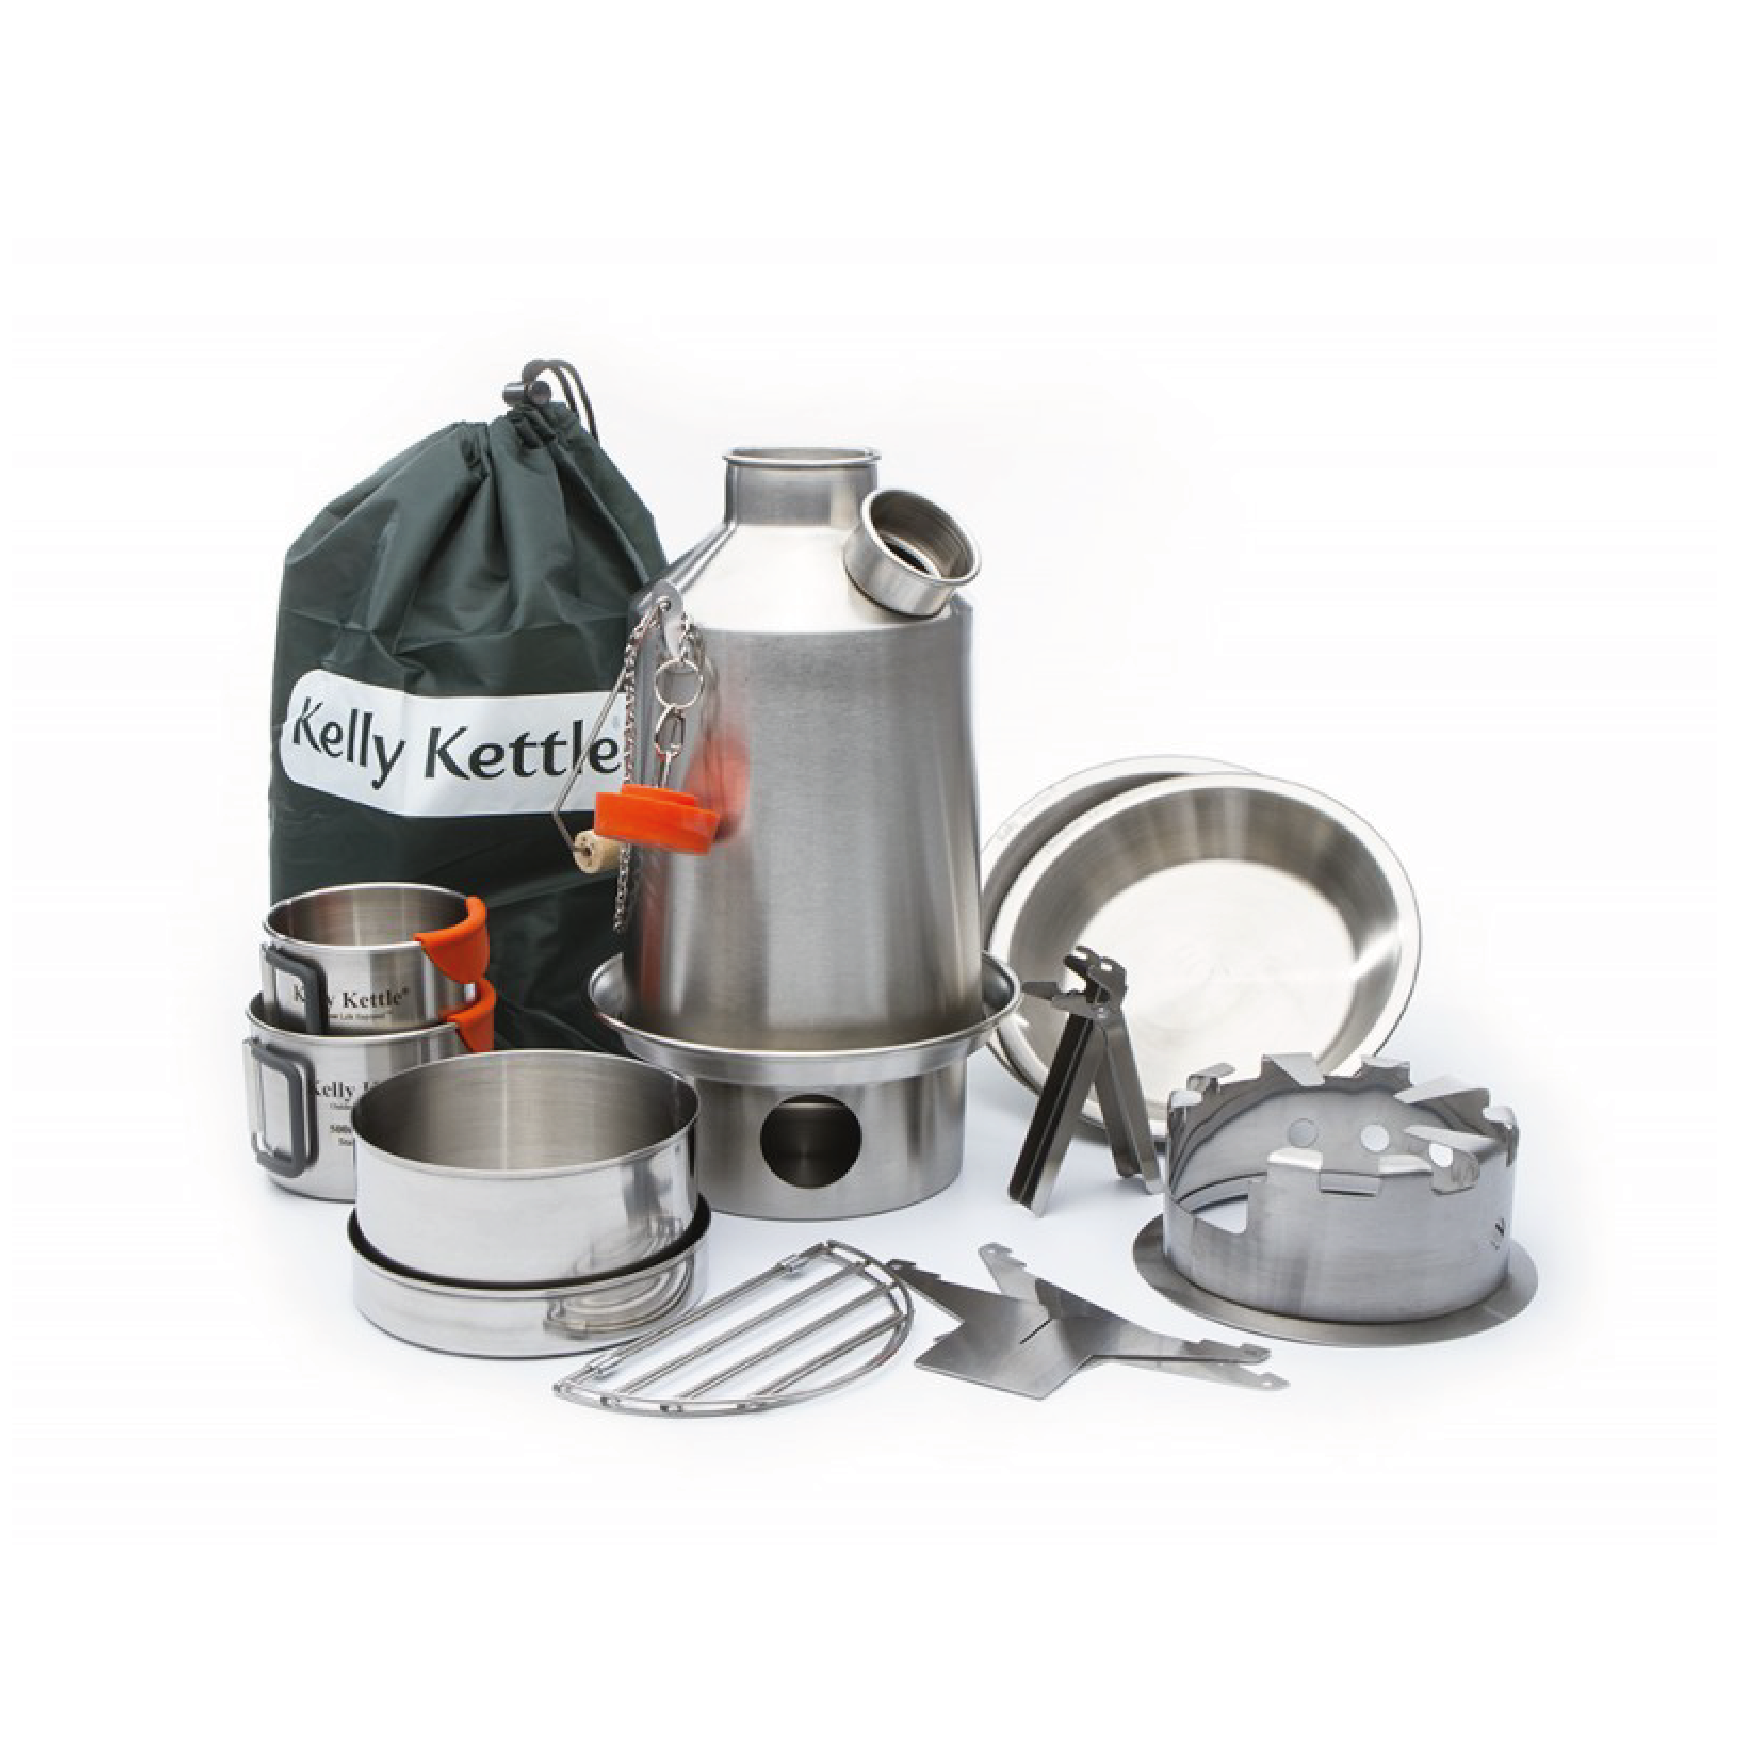 Kelly Kettle Scout Kit.png